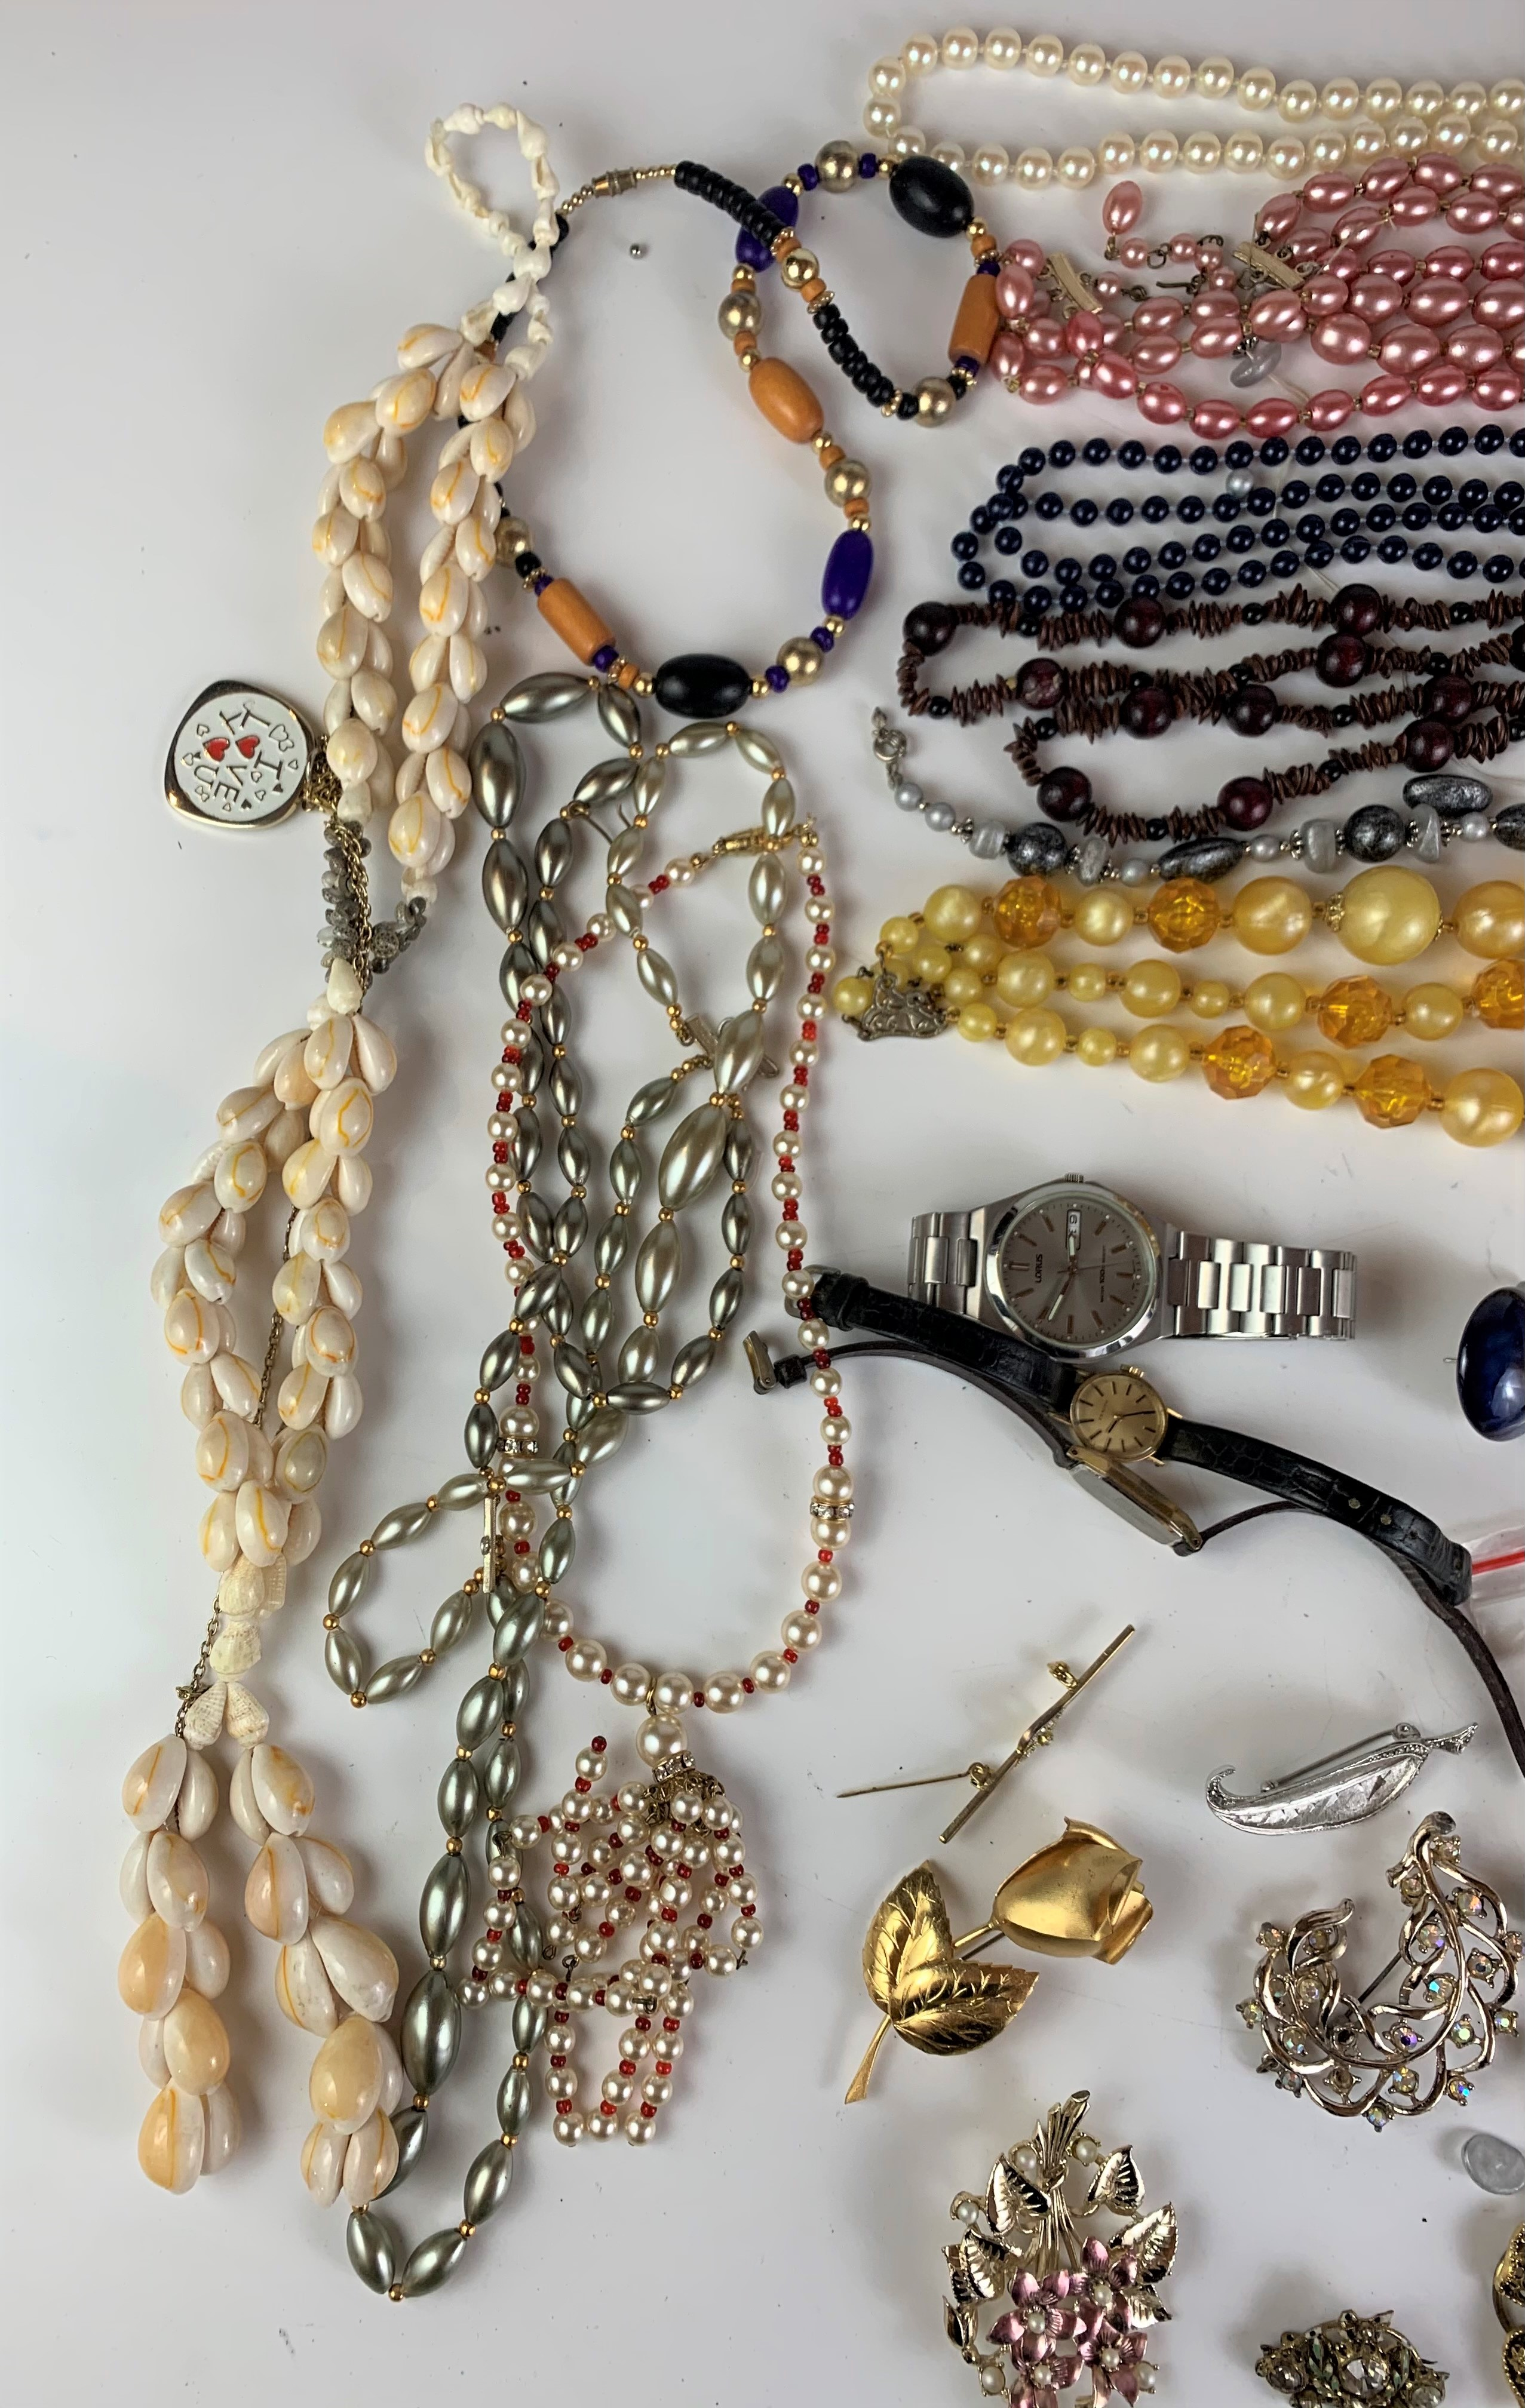 Large bag of assorted dress jewellery including necklaces, beads, earrings, brooches etc. - Image 3 of 8